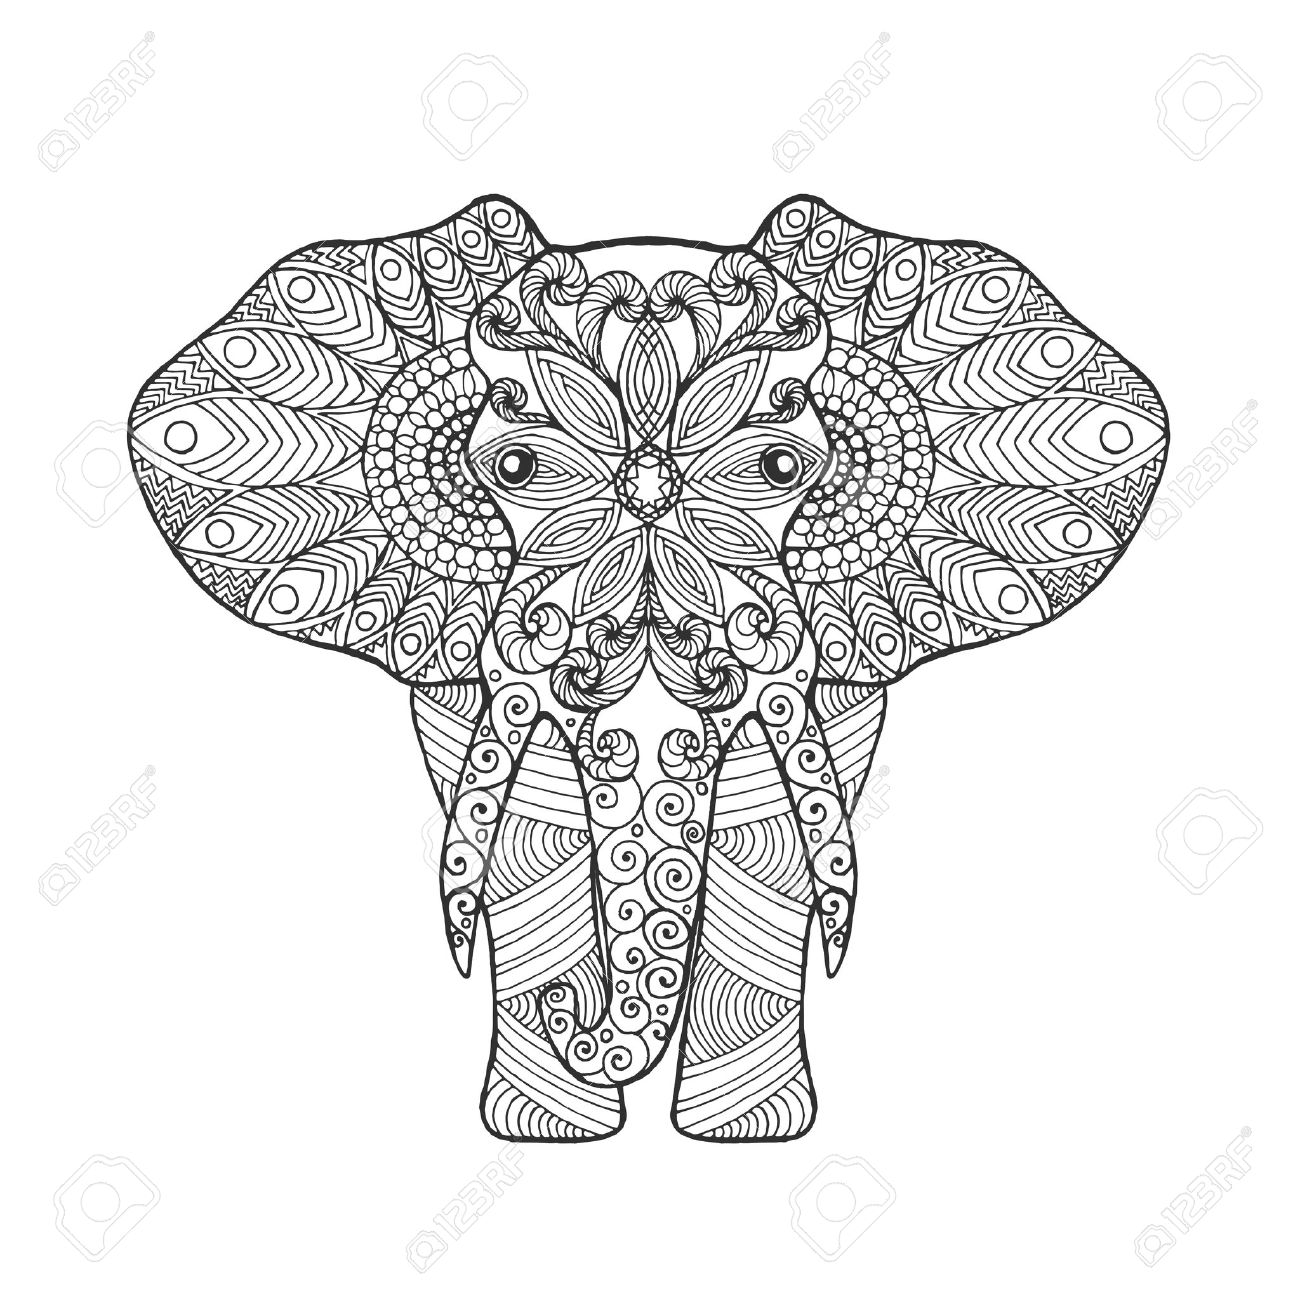 Elephant Tusk Drawing at GetDrawings.com | Free for personal use ...